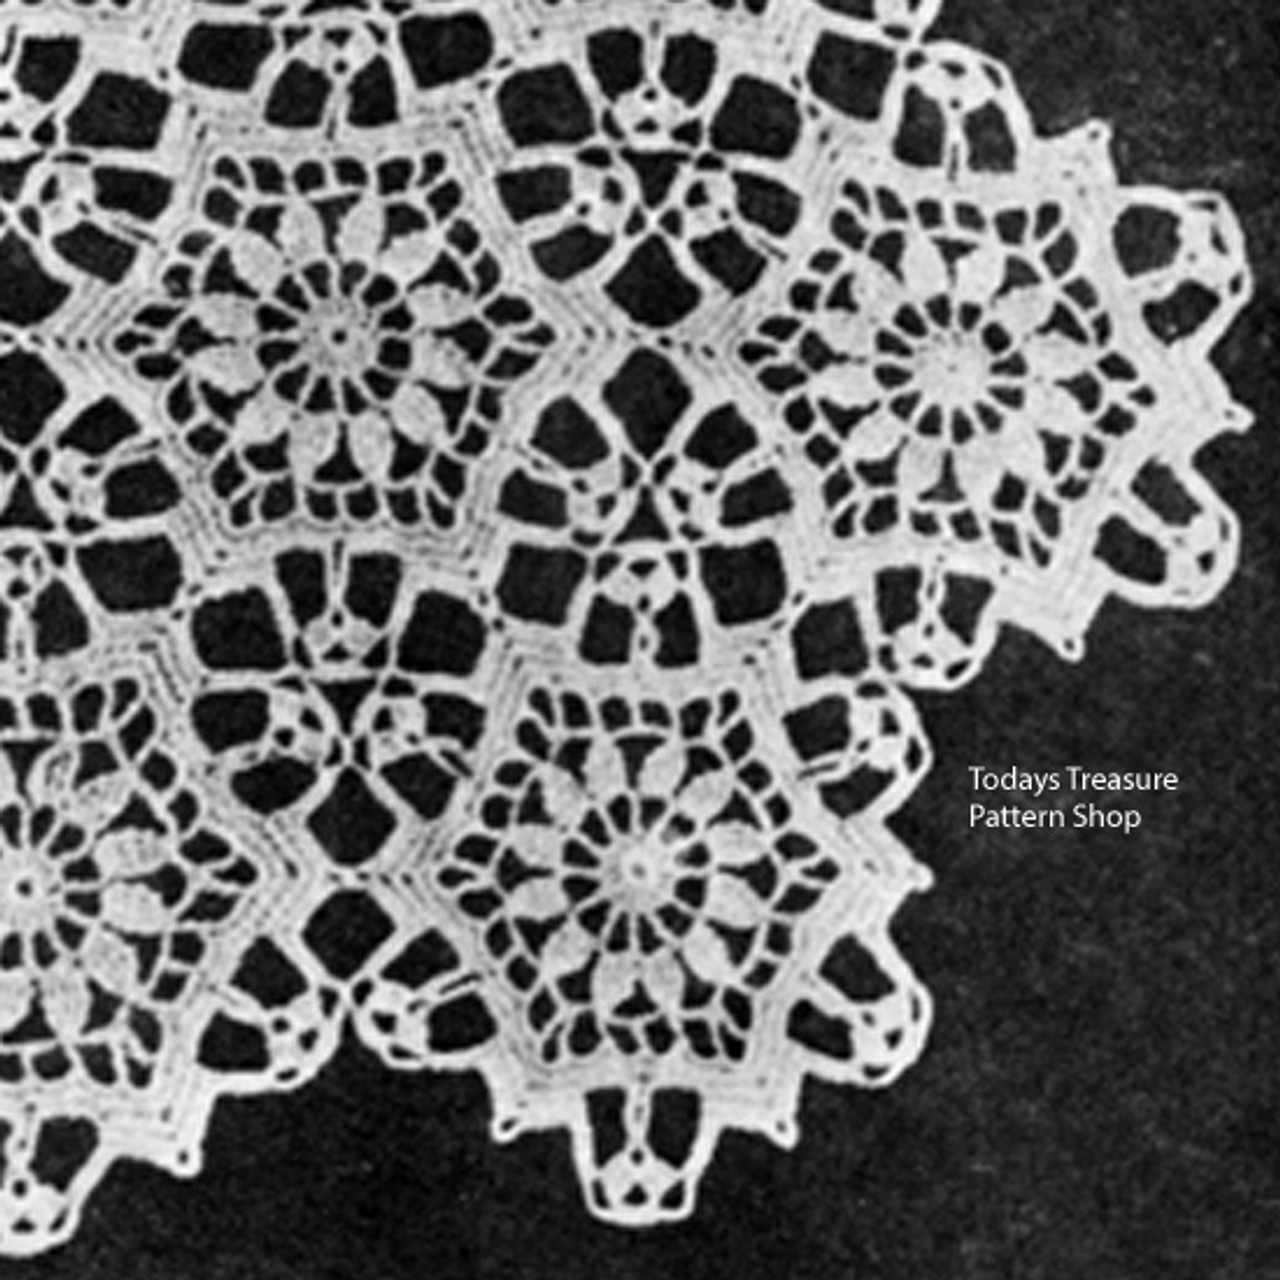 Vintage Dainty Flower Medallion pattern for Scarves and Runners